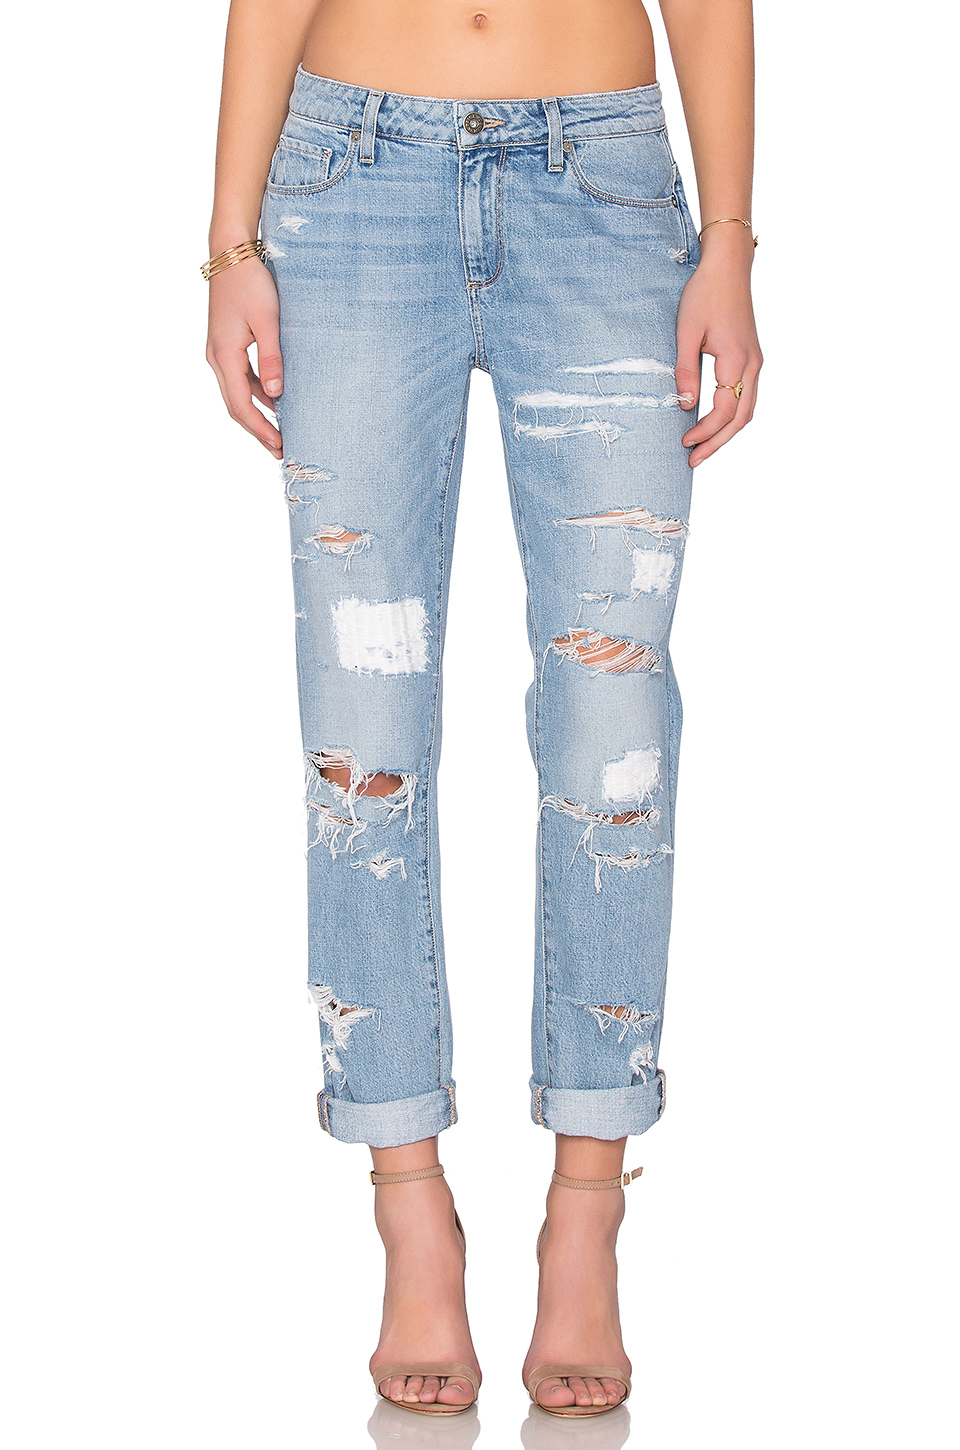 PAIGE DENIM JIMMY JIMMY RIPPED BOYFRIEND JEANS